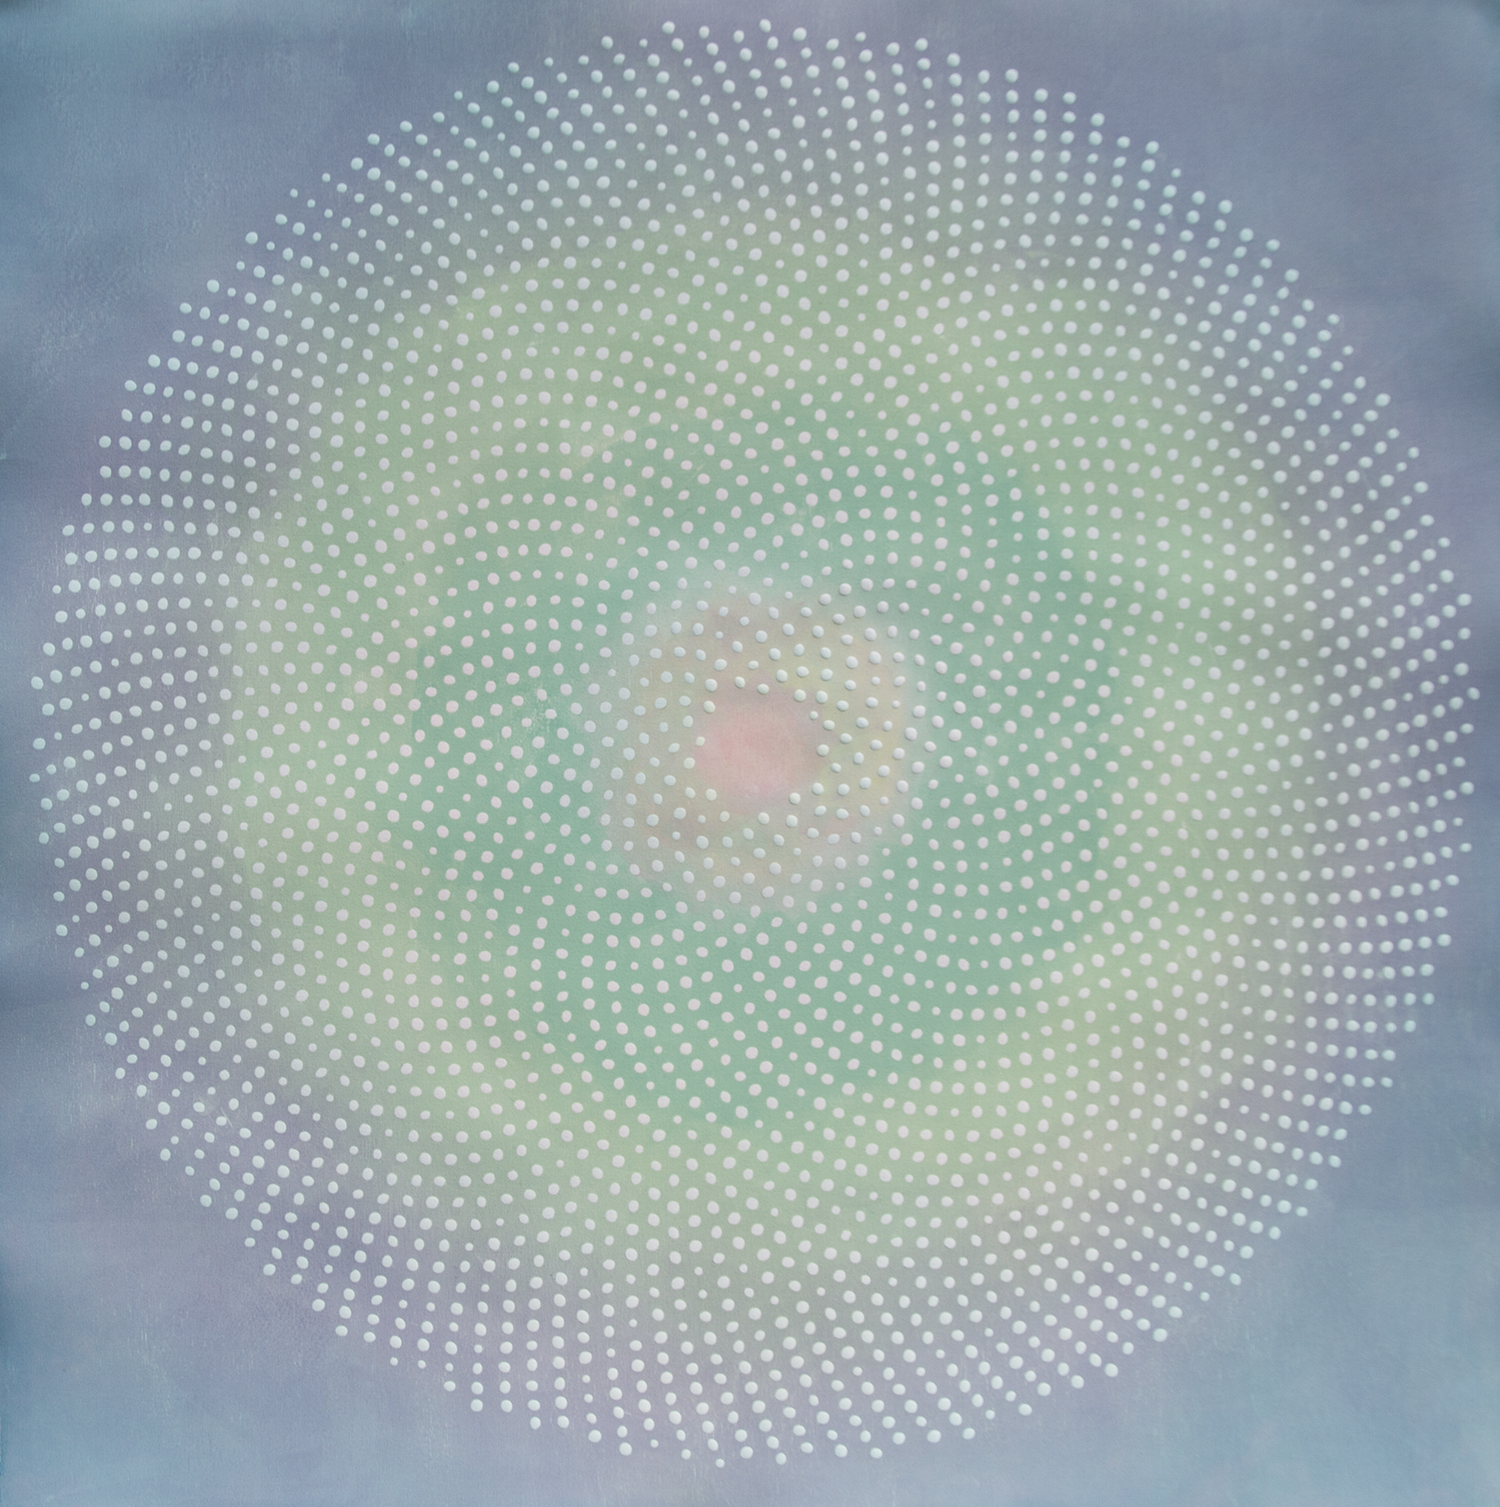 Phyllotaxis 23